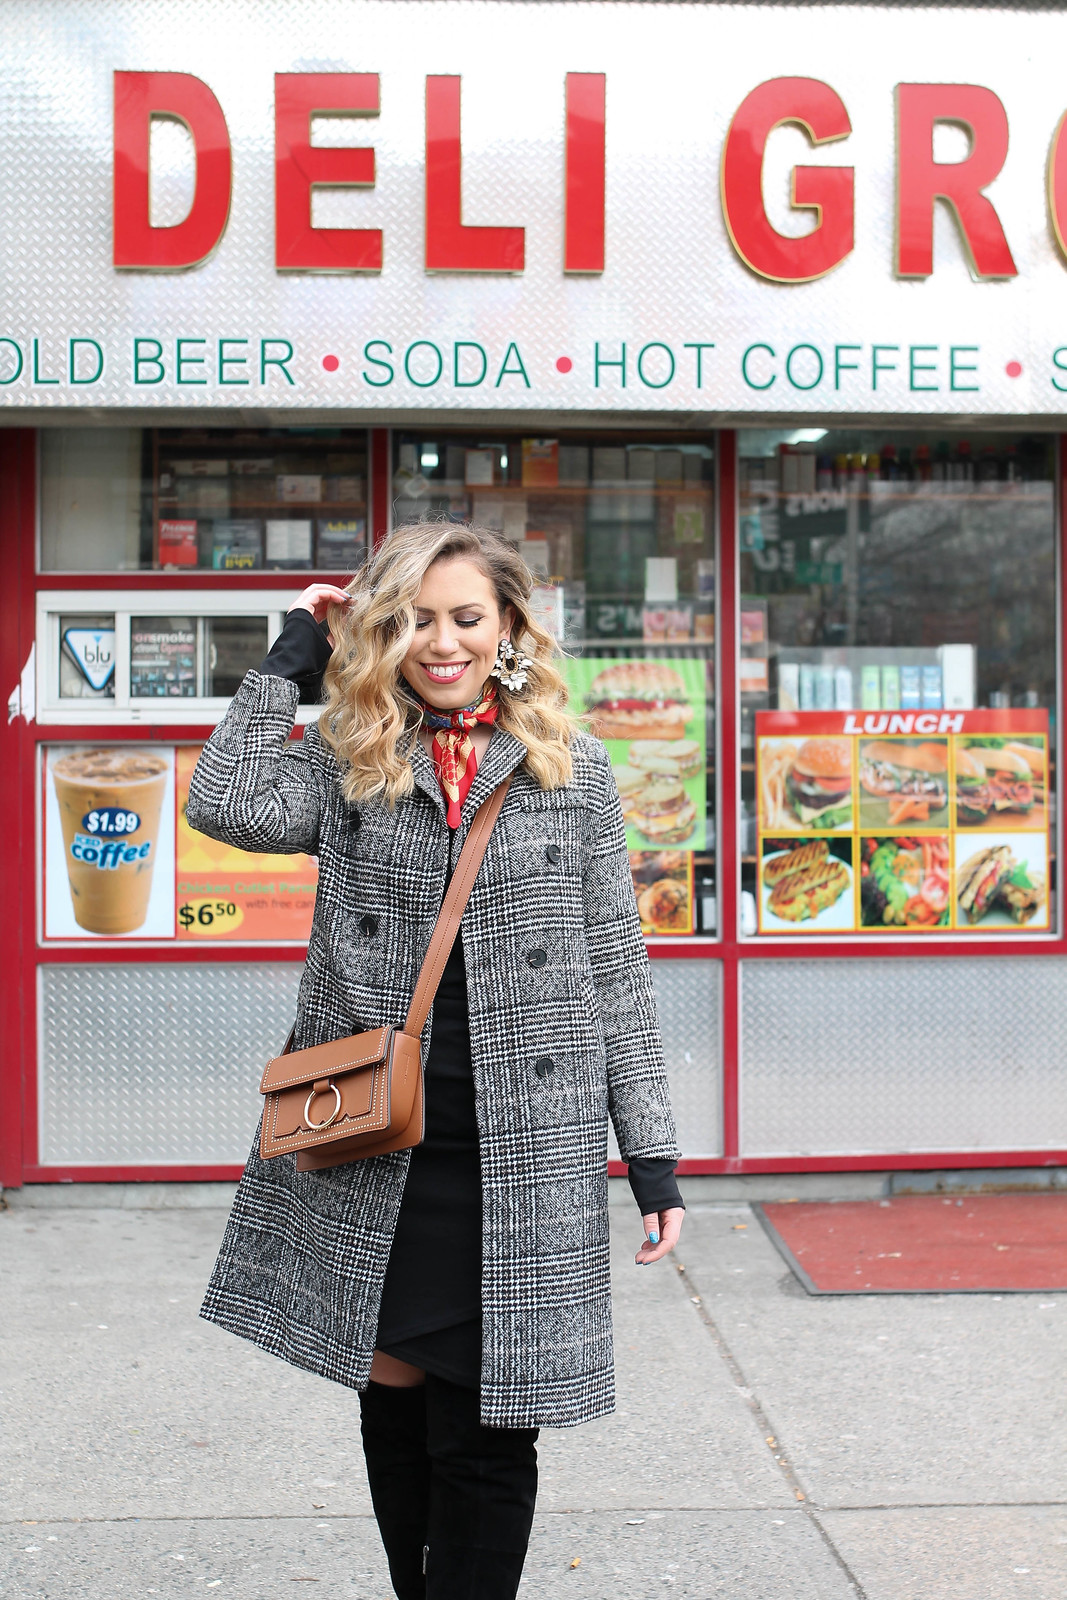 New York Winter All Black Outfit Plaid Coat Melie Bianco Cheri Bag Vintage Red Neck Scarf Curly Blonde Hair